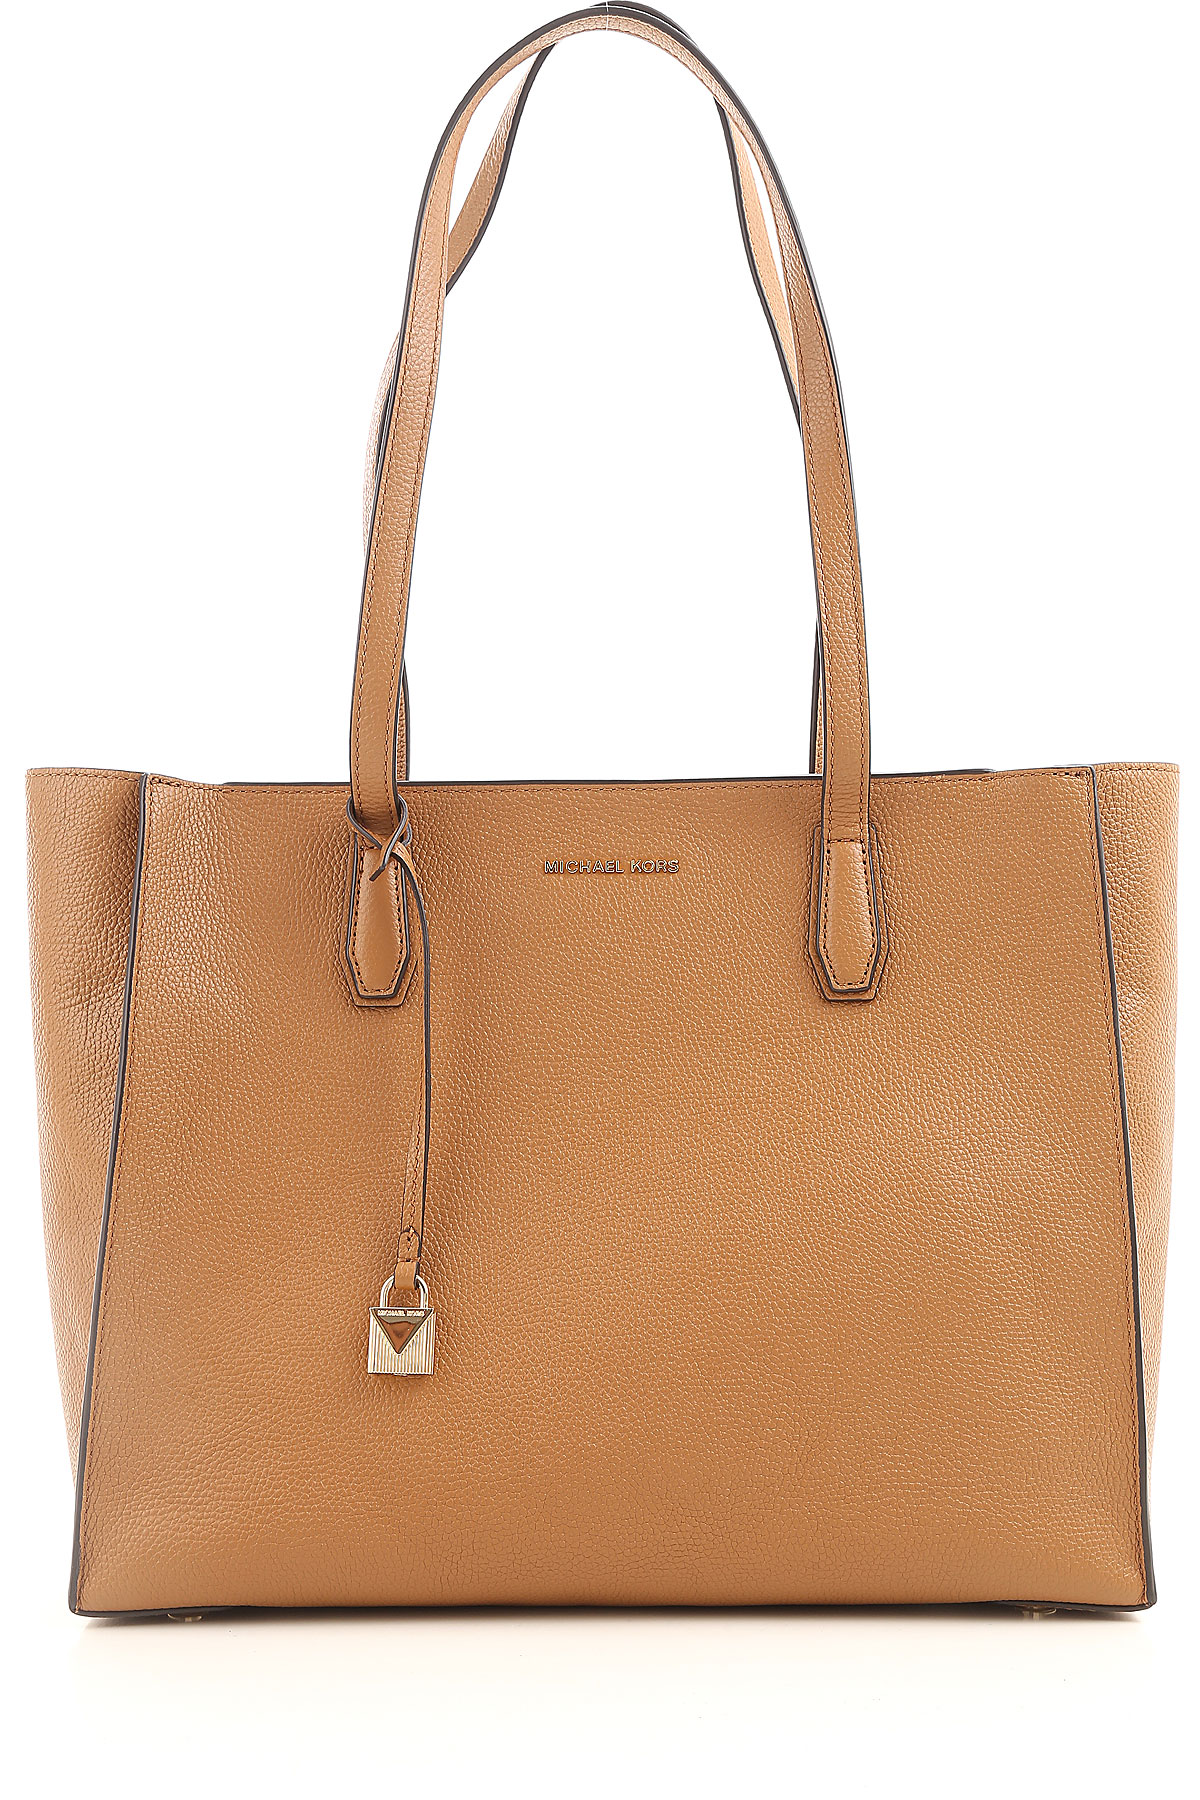 Michael Kors Tote Bag On Sale, brown leather, Leather, 2017